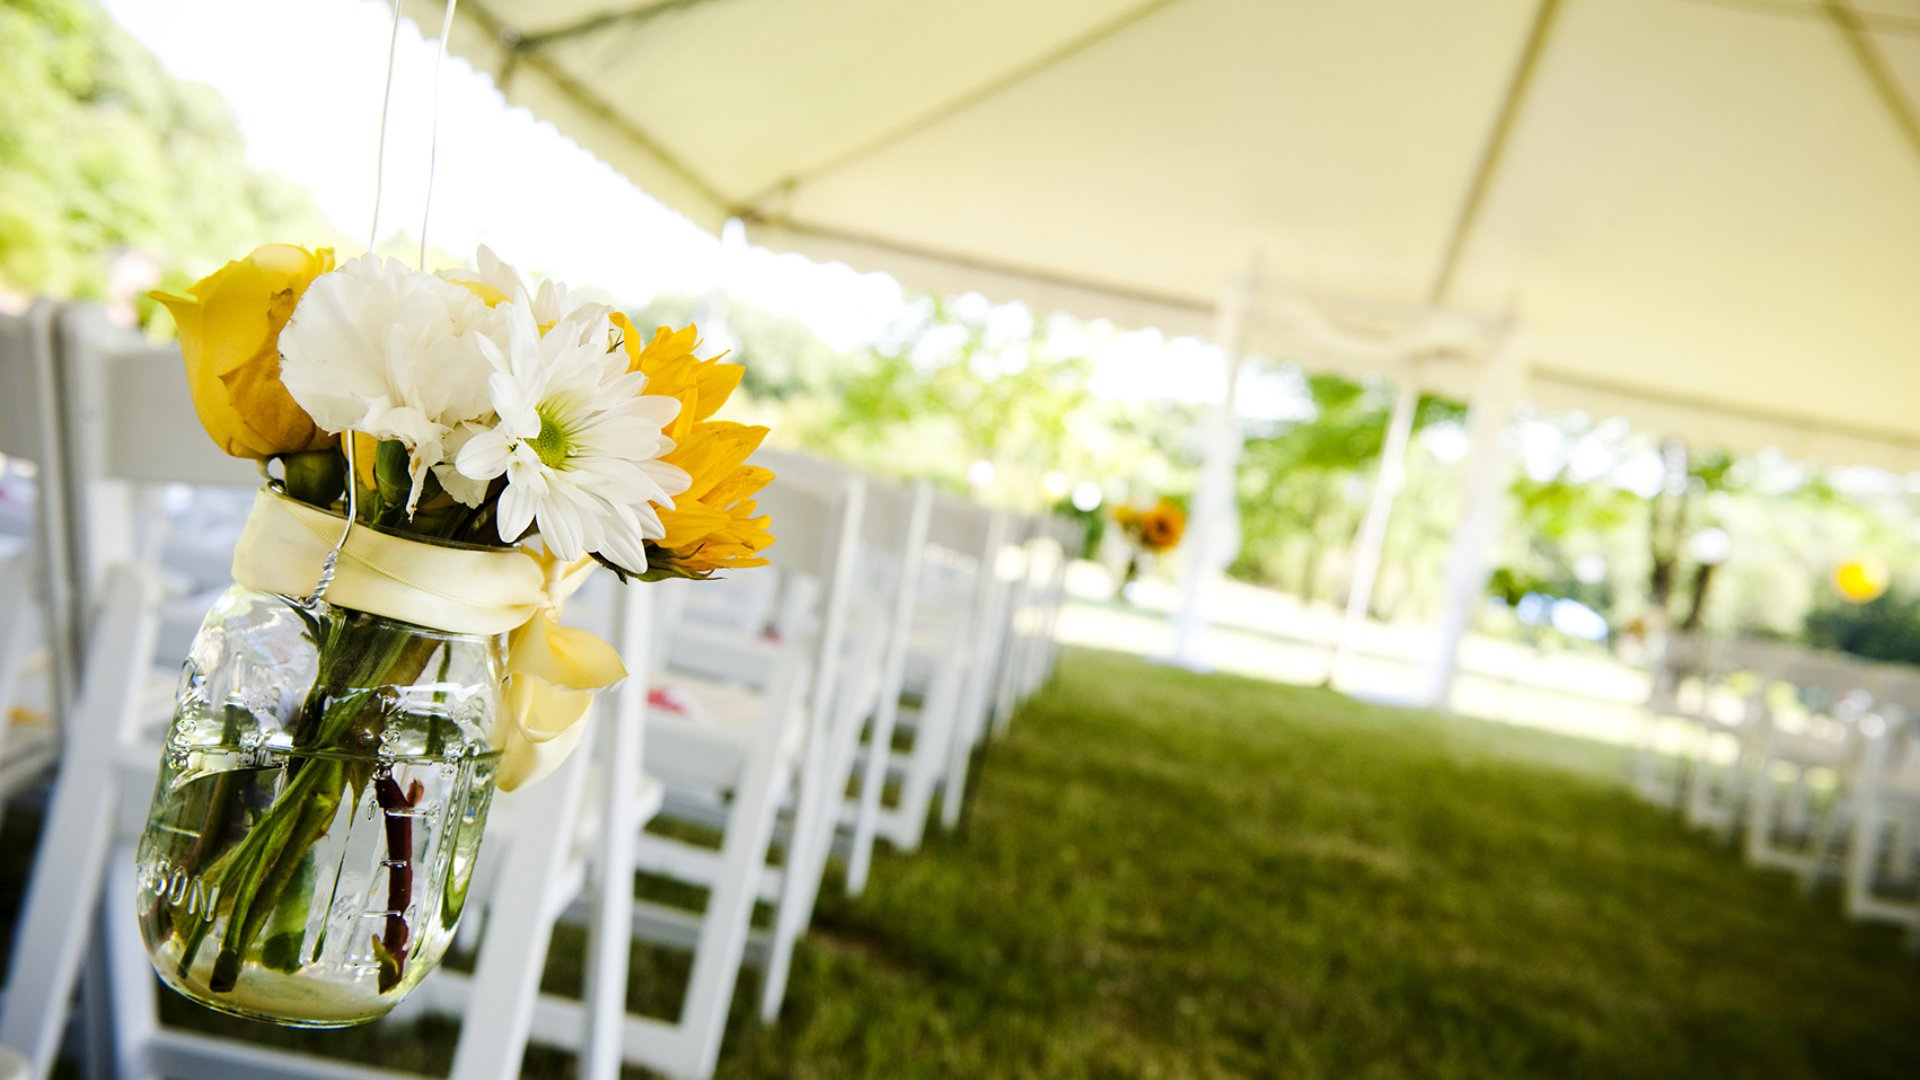 Wedding hire services